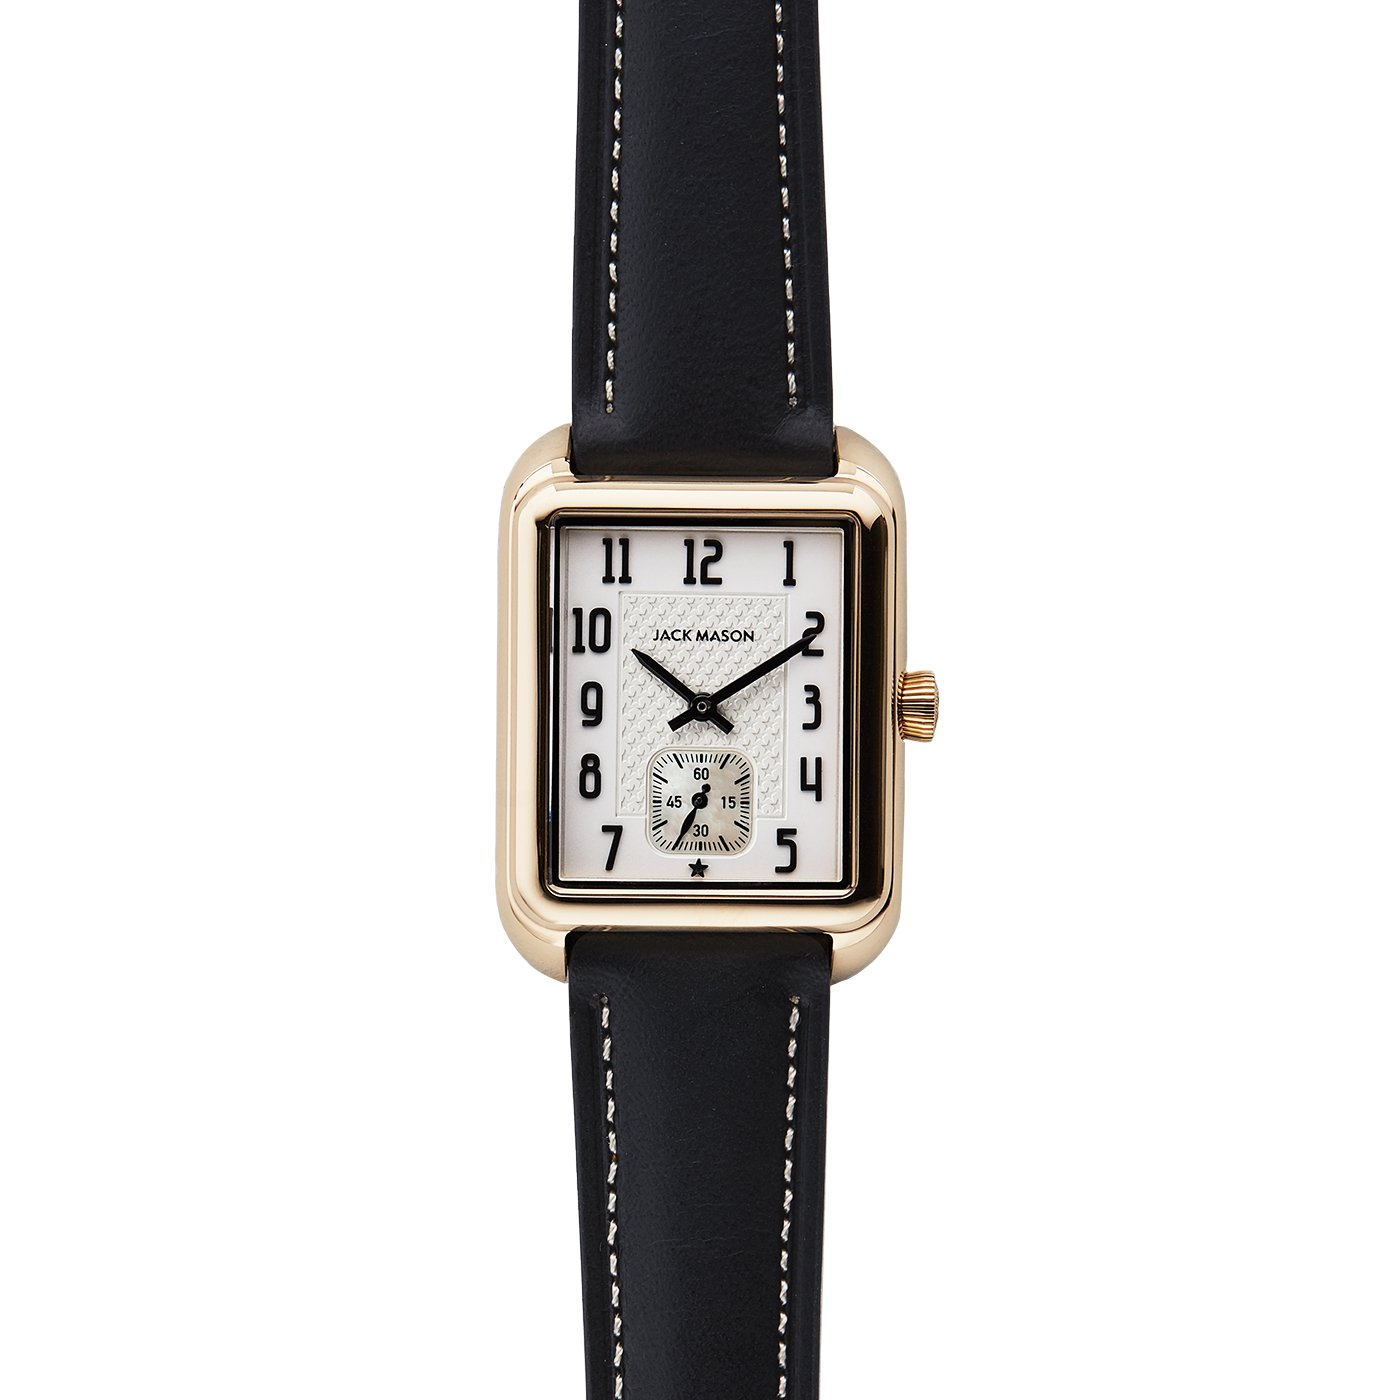 Jack Mason Issue No 2 Yellow Gold Sub Second White Dial Black Leather Strap